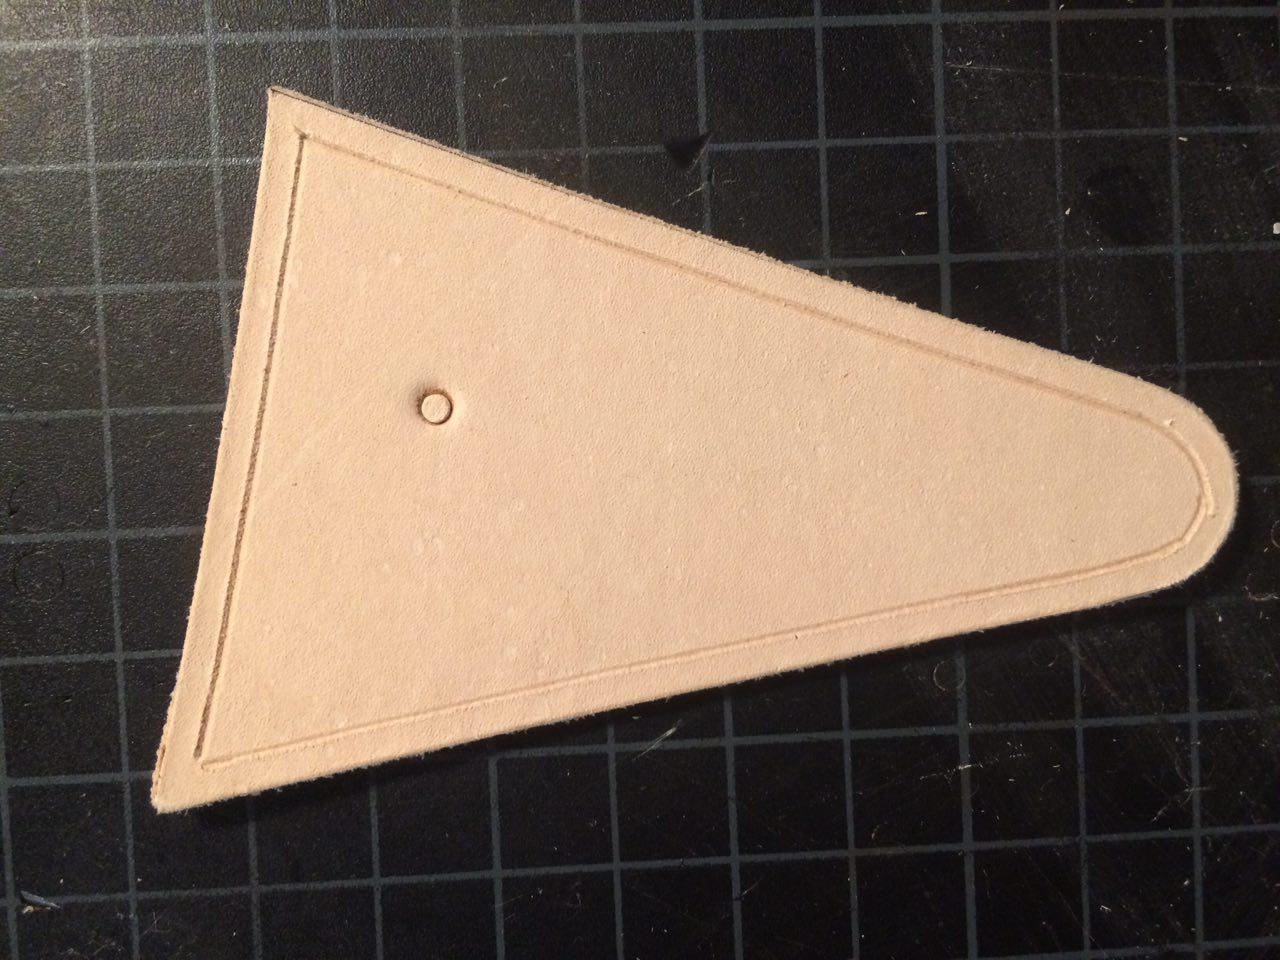 I'll use this piece of scrap leather, that I've already created a stitching channel on, to help explain these three problems.